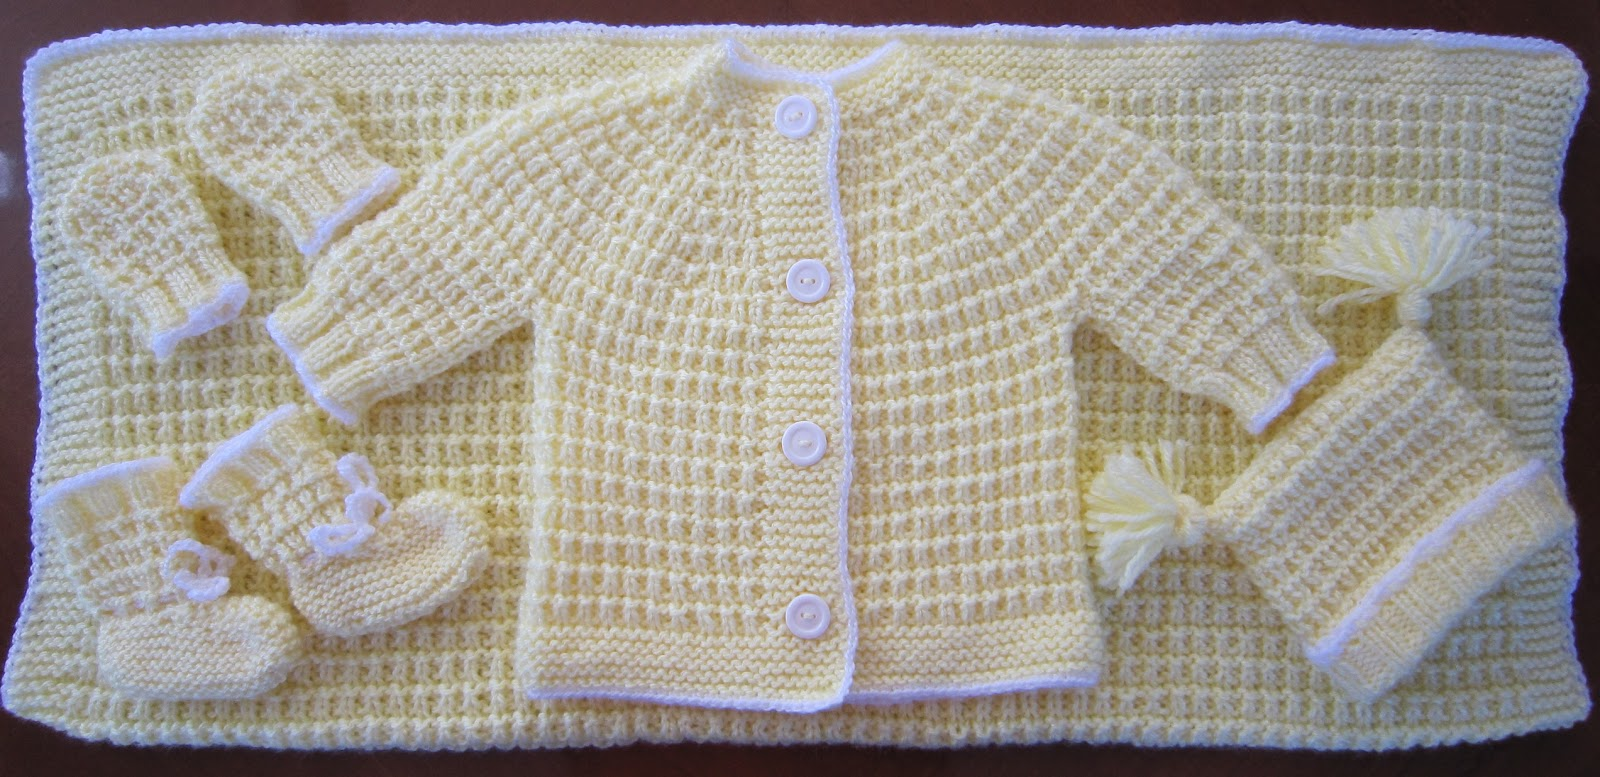 Vistoso Free Knitting Patterns For Baby Sweater Sets Inspiración ...